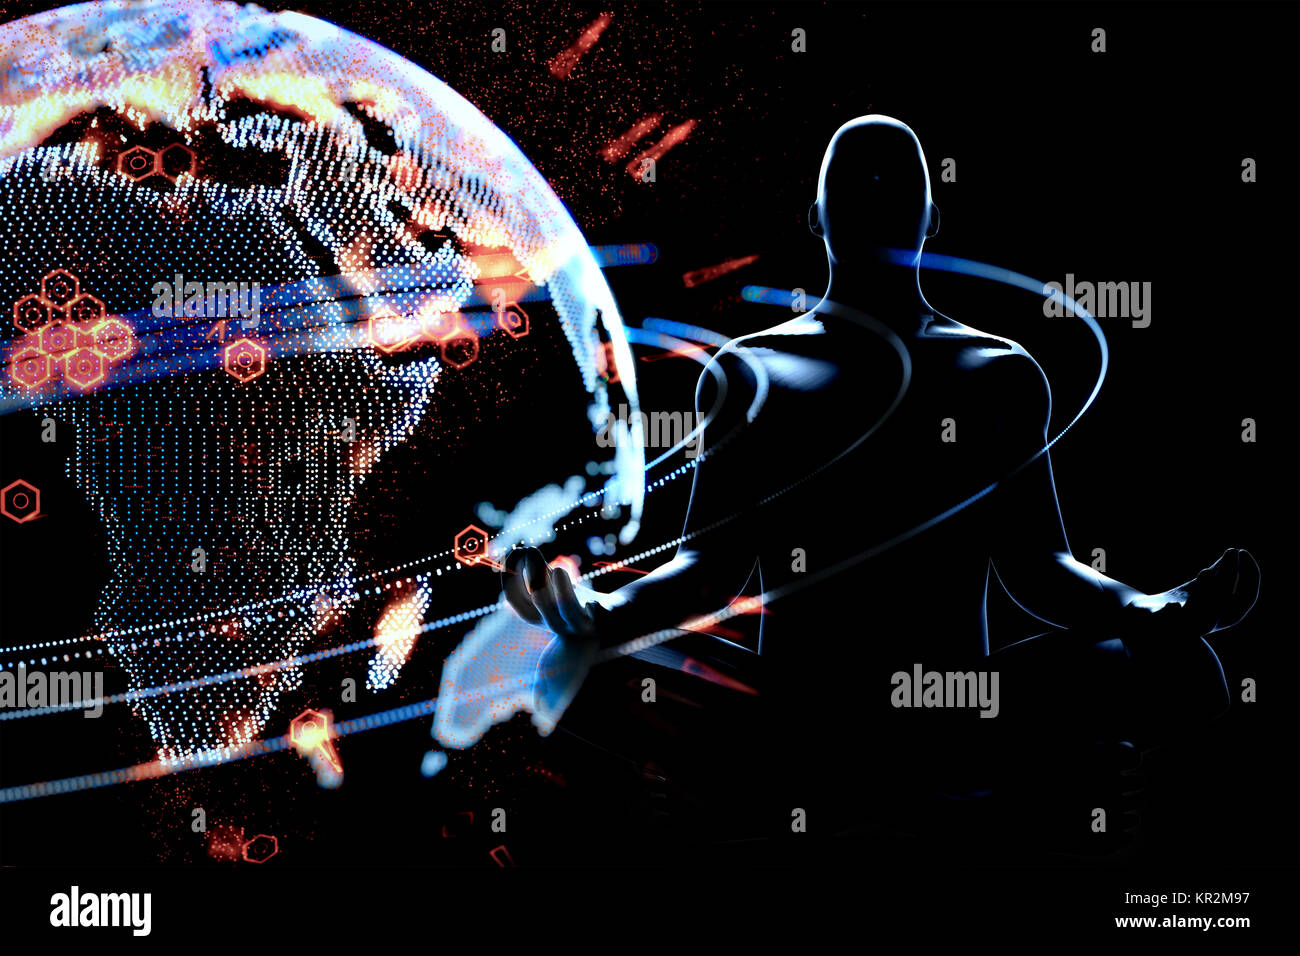 cyber communication The united states military is heavily dependent on networked communication to  fulfill its missions the wide-area network (wan) infrastructure that supports this.